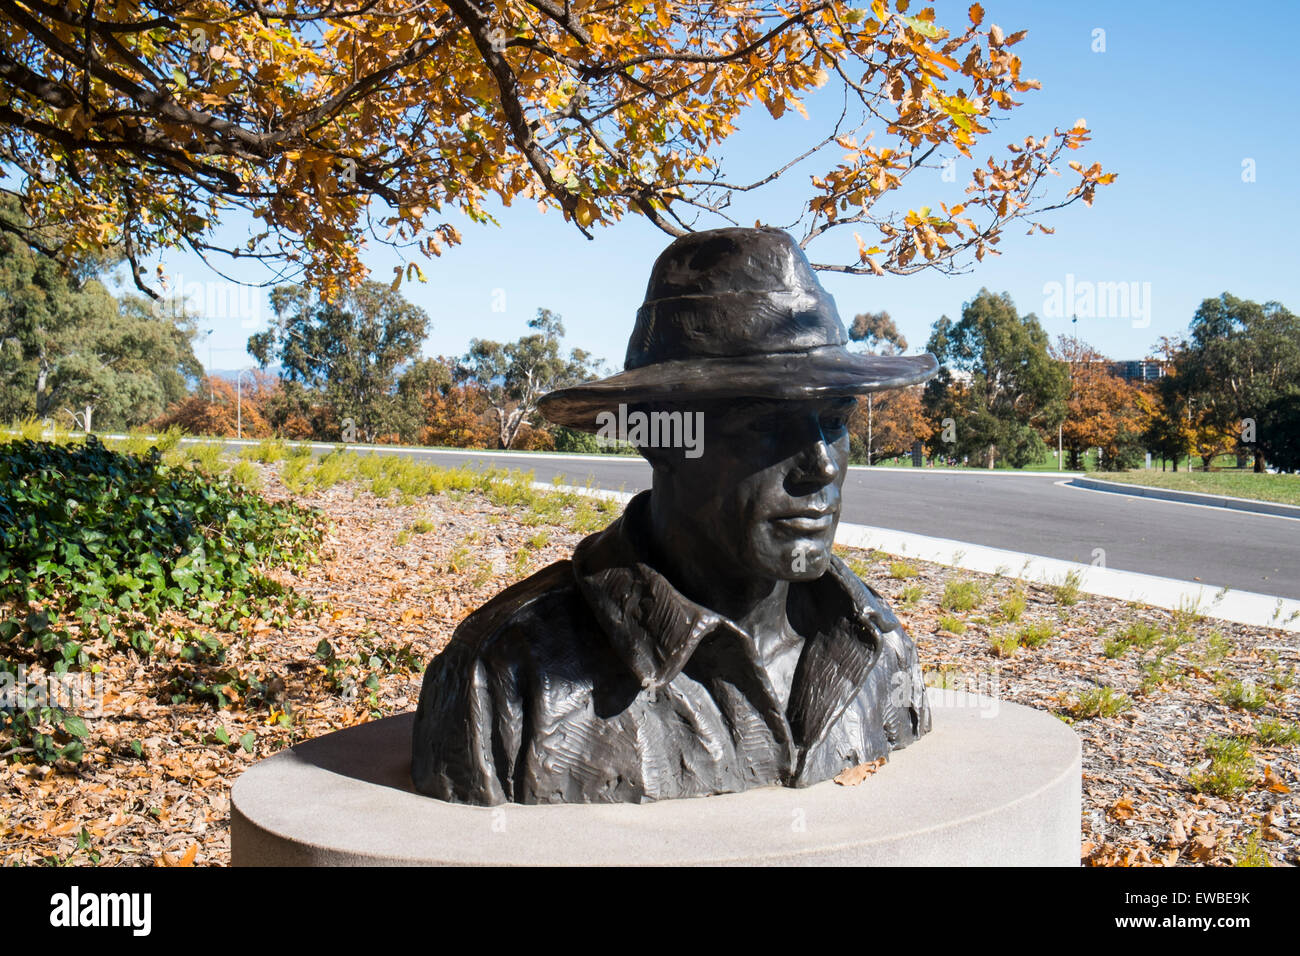 bust of wallace anderson great australian sculptur at the Australian war memorial in Canberra , Australia - Stock Image